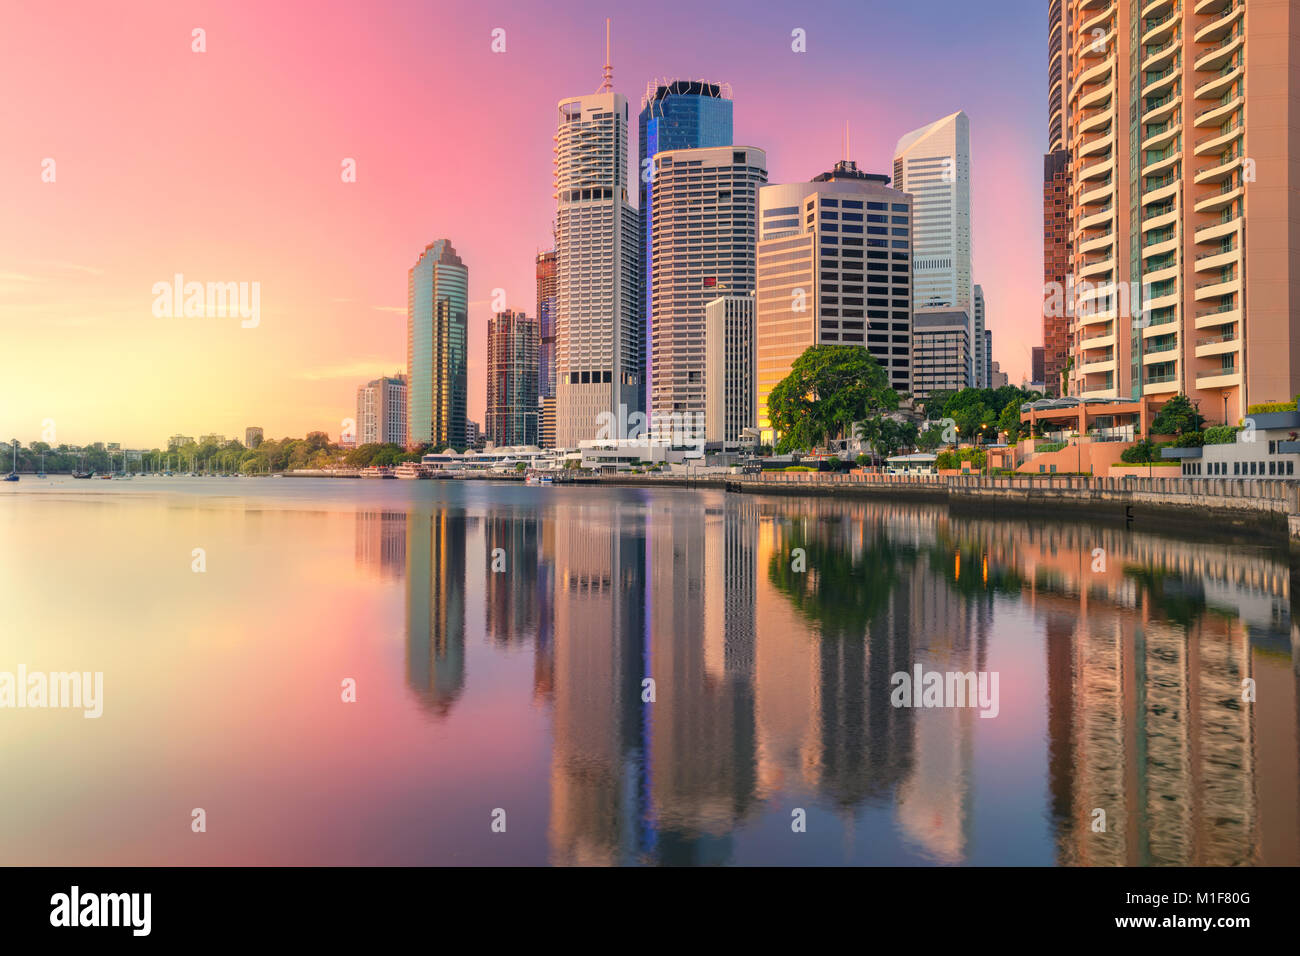 Brisbane. Cityscape image of Brisbane skyline, Australia during sunrise. - Stock Image